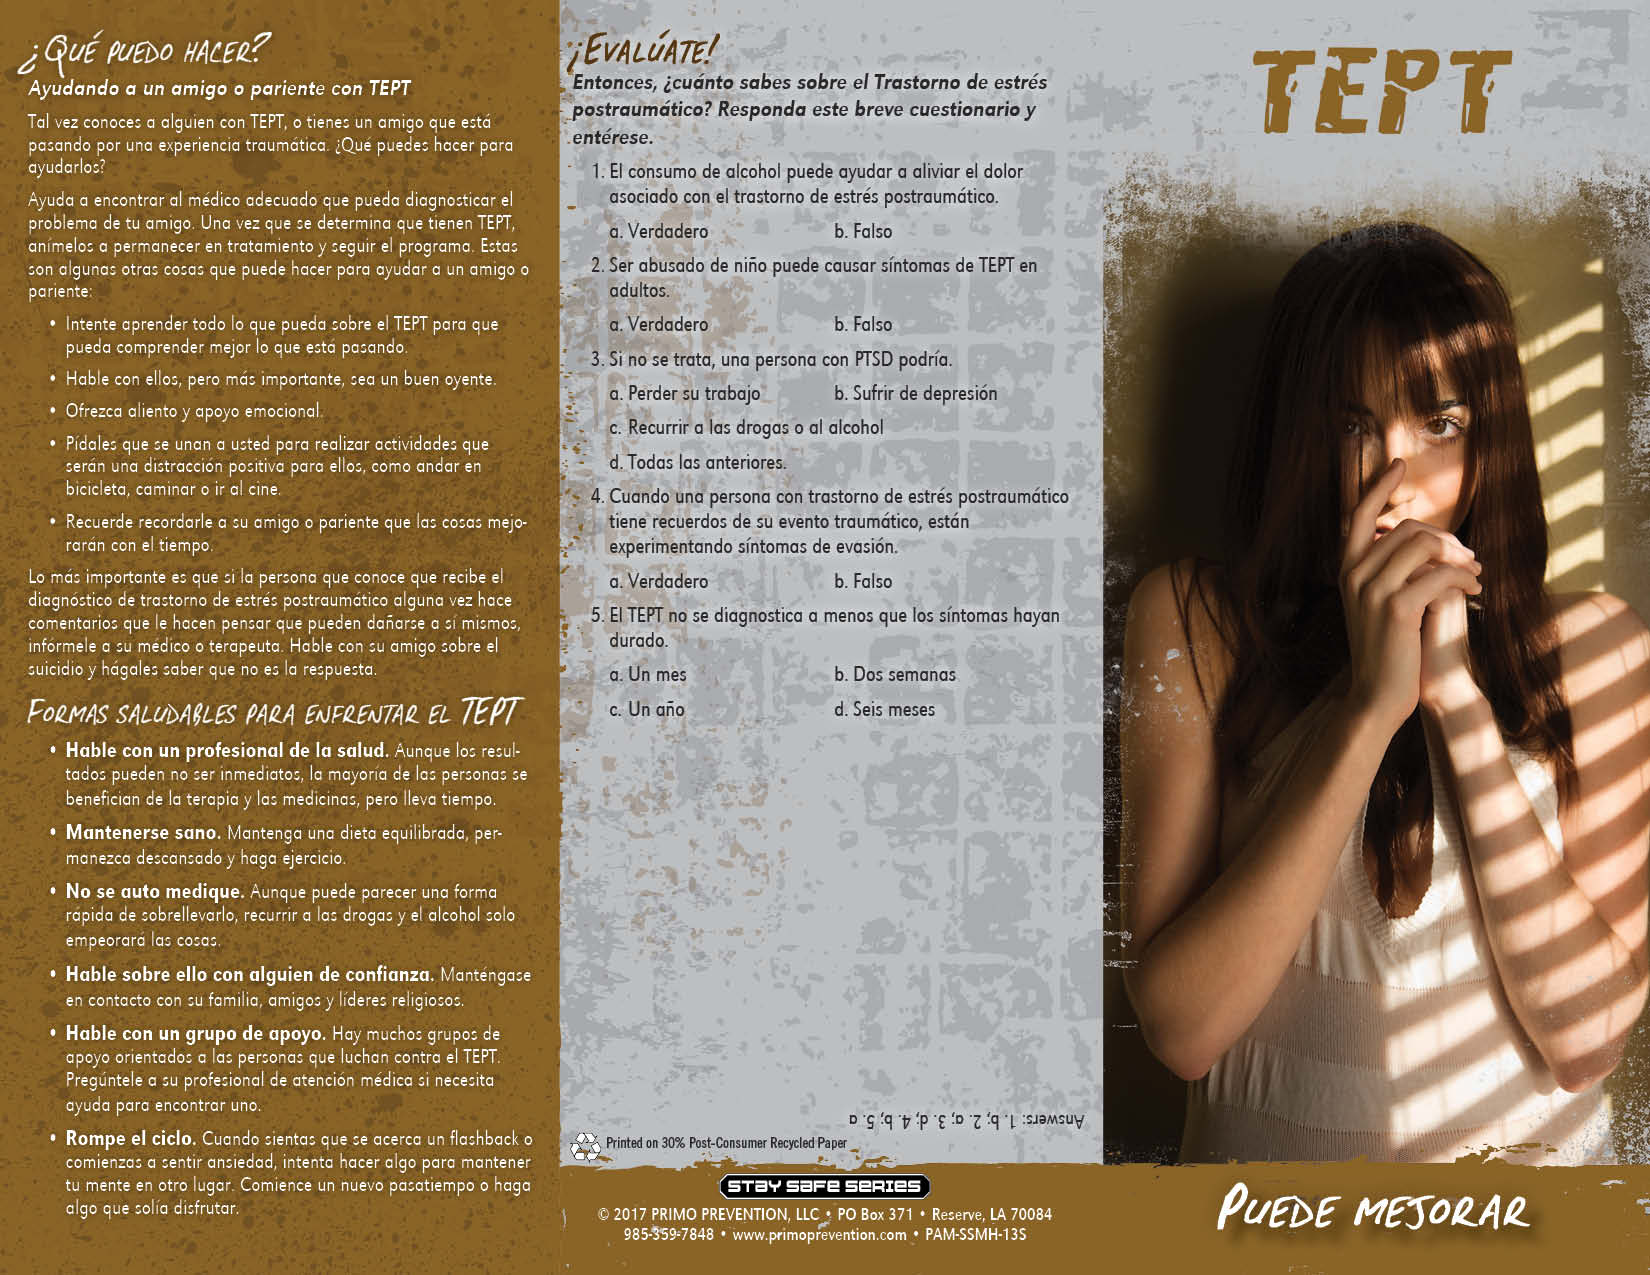 Spanish ptsd post traumatic stress disorder pamphlet primo lightbox publicscrutiny Image collections